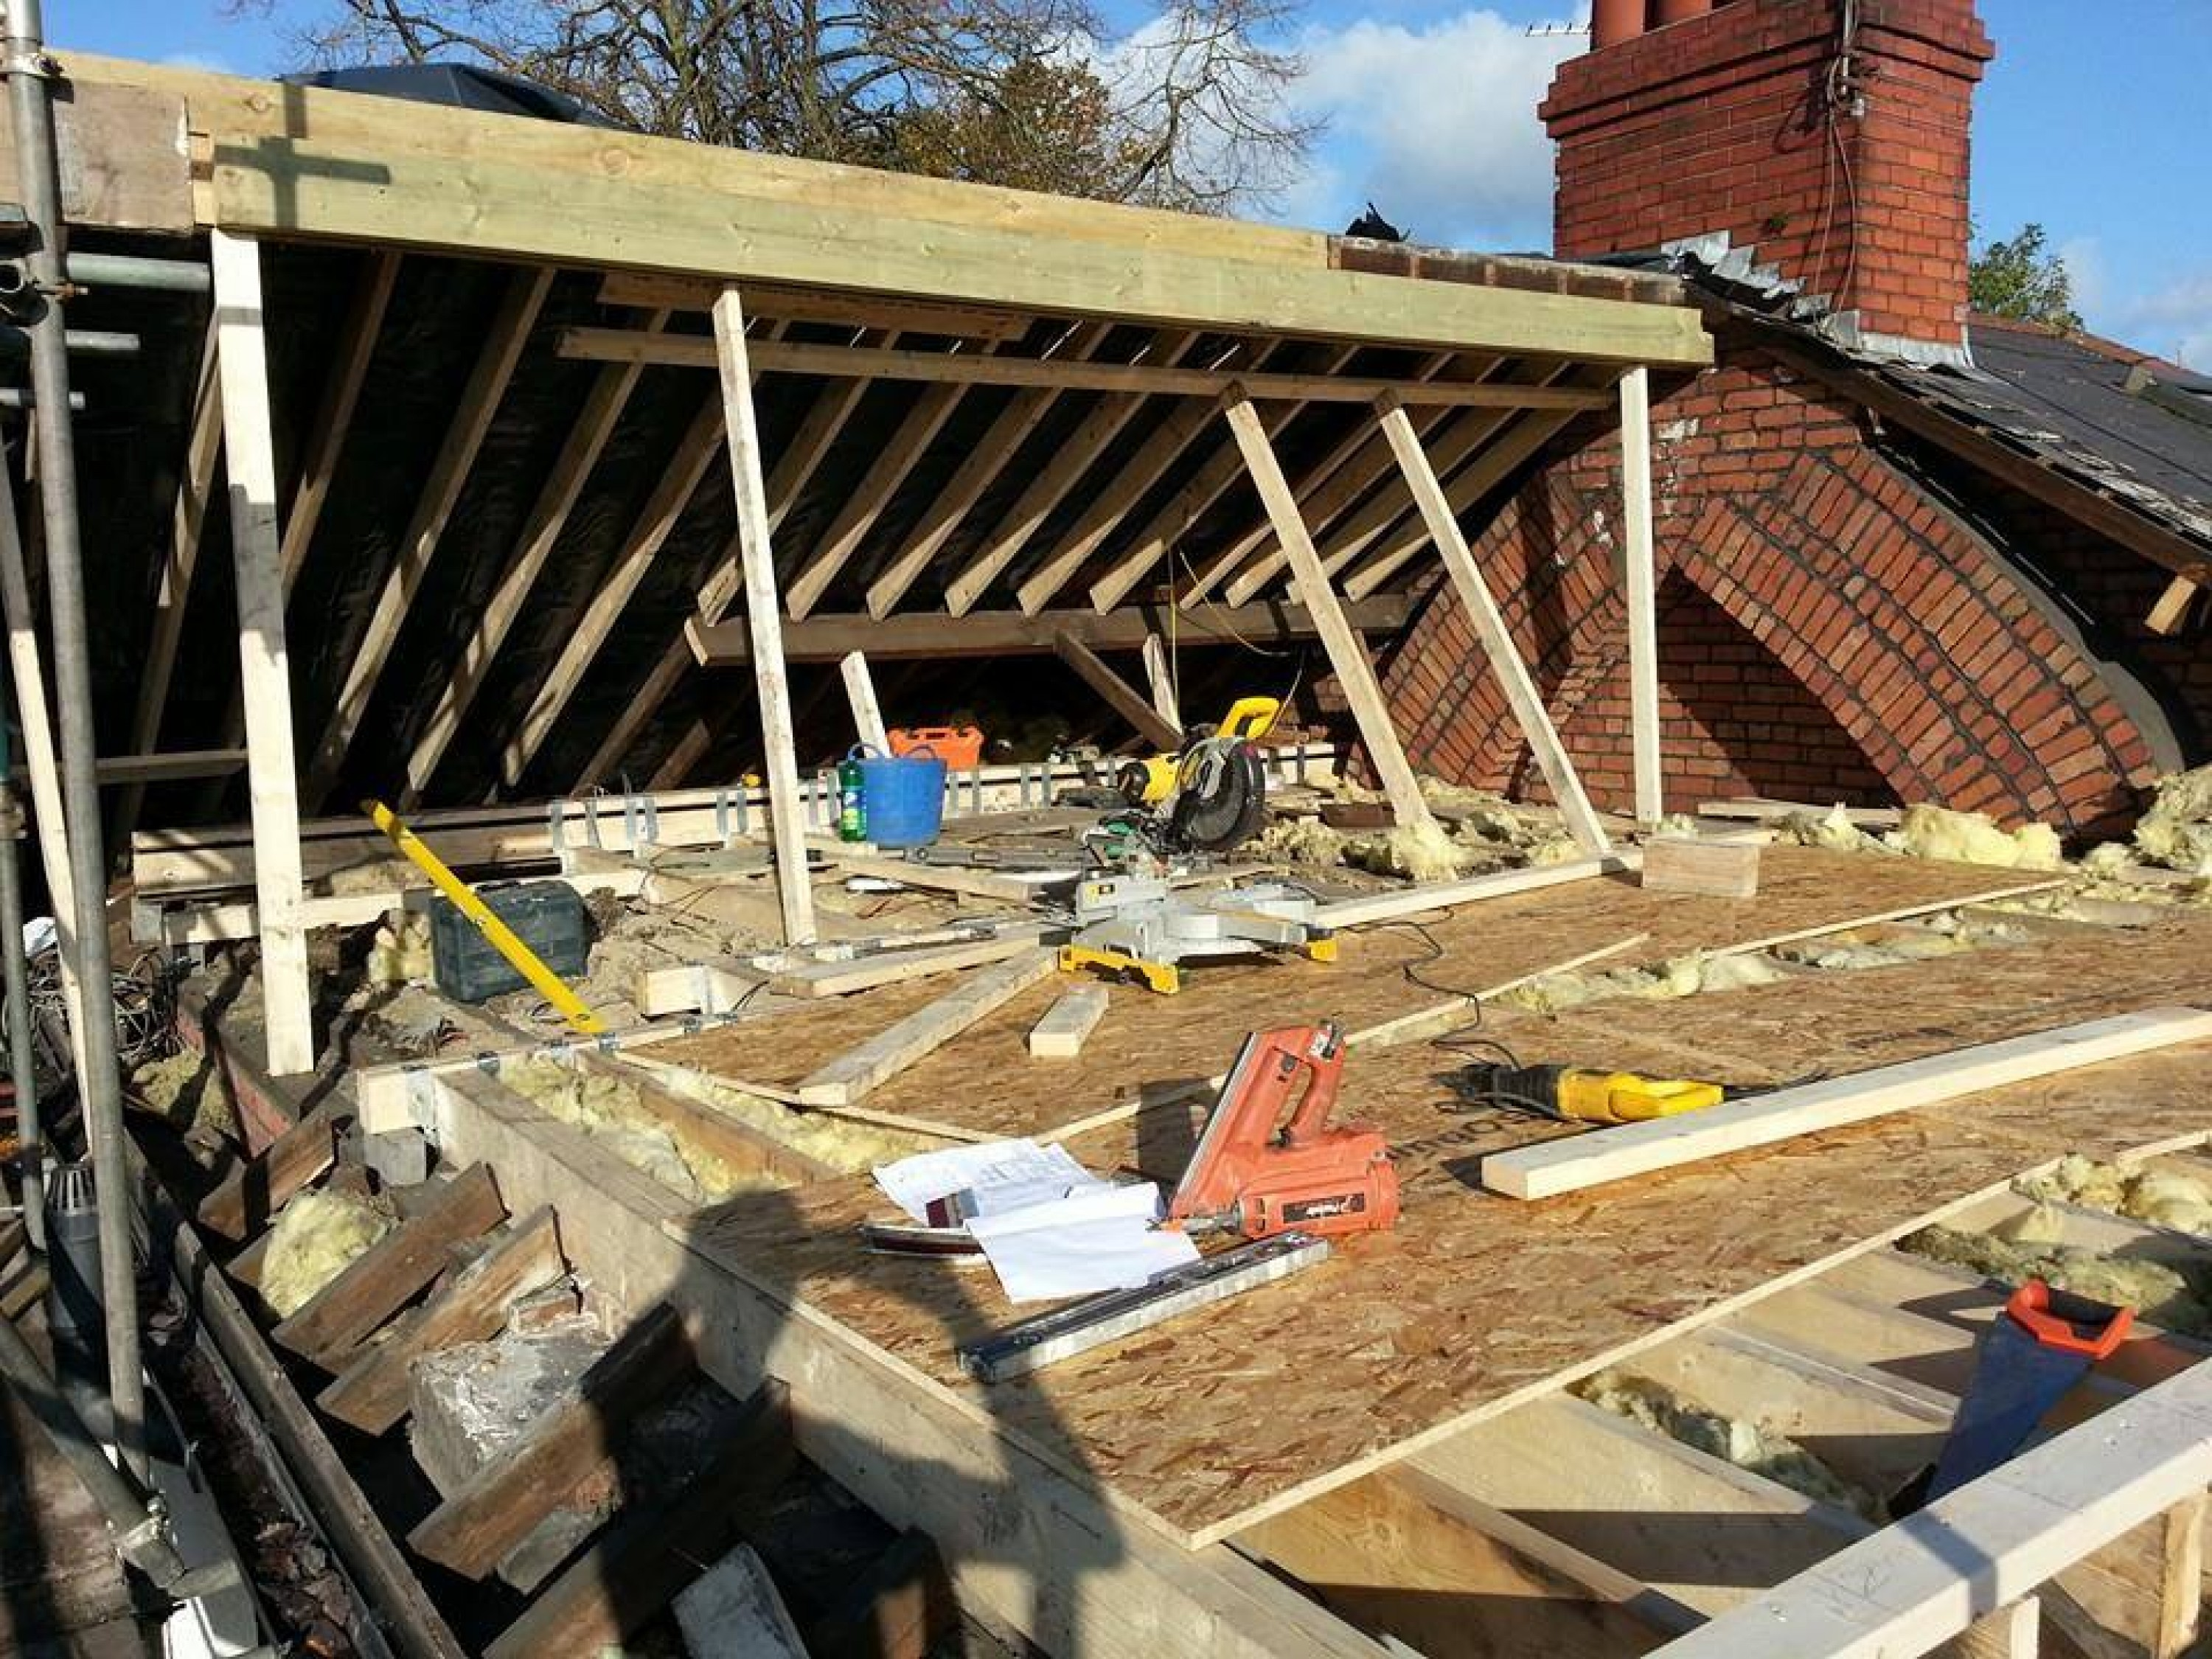 Taking advantage of a dry day by stripping the rear roof to install the new ridge beam and construct the rear dormer